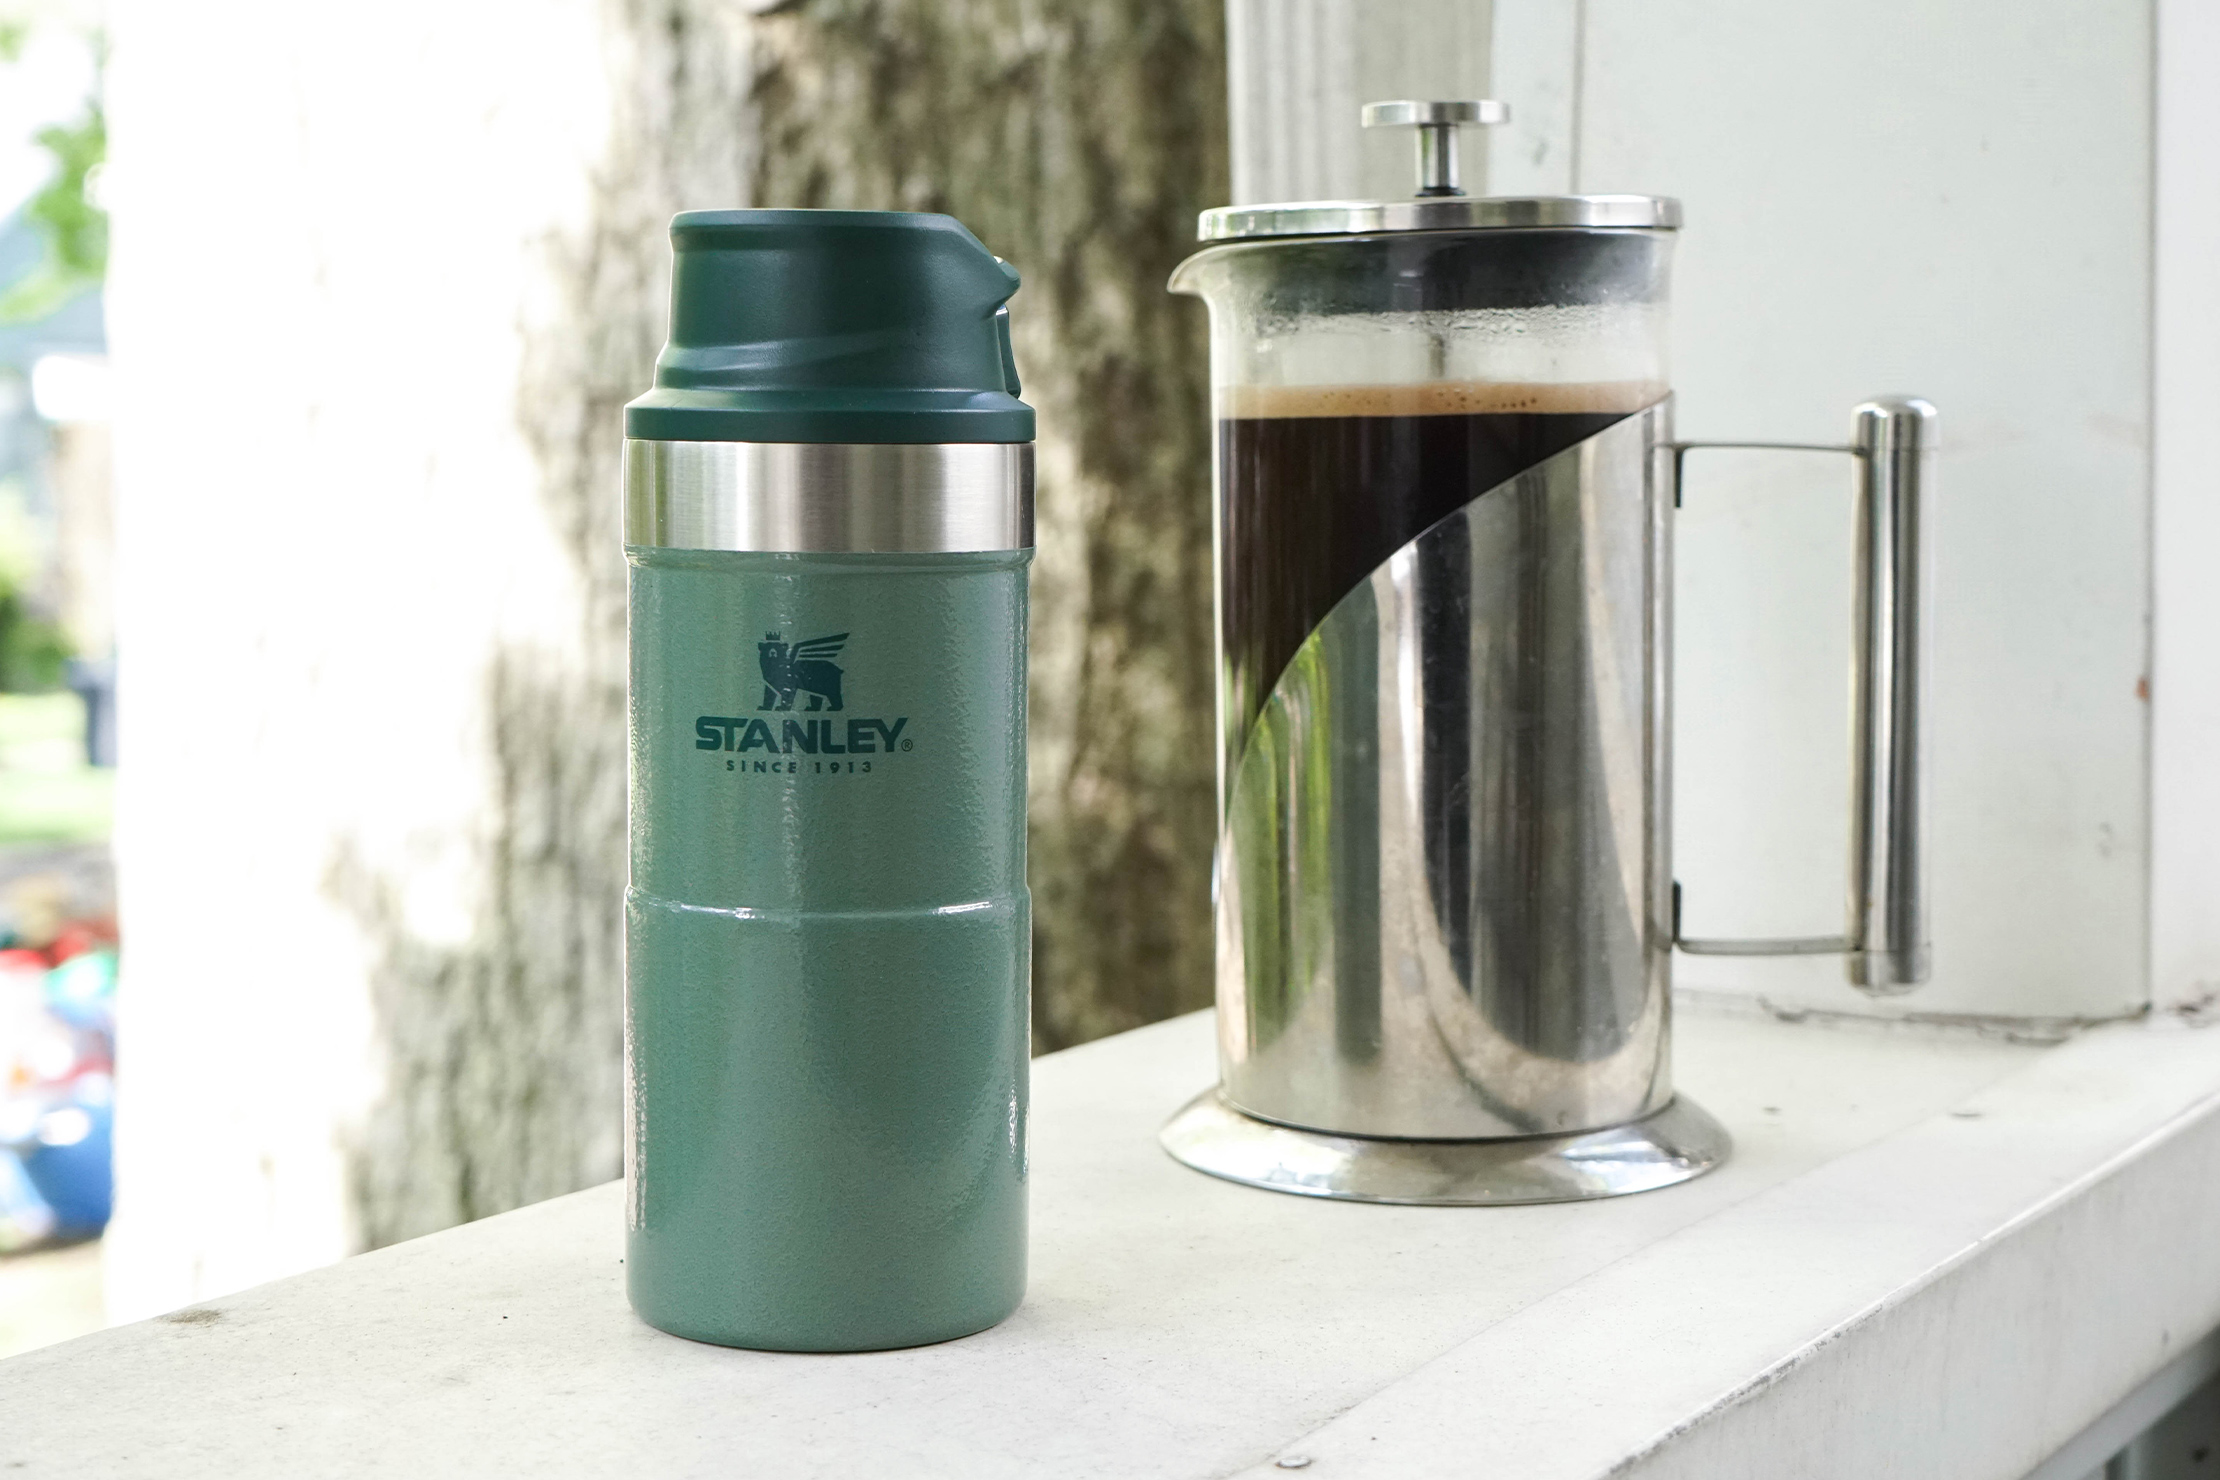 Stanley Classic Trigger-Action Travel Mug 12oz with Coffee